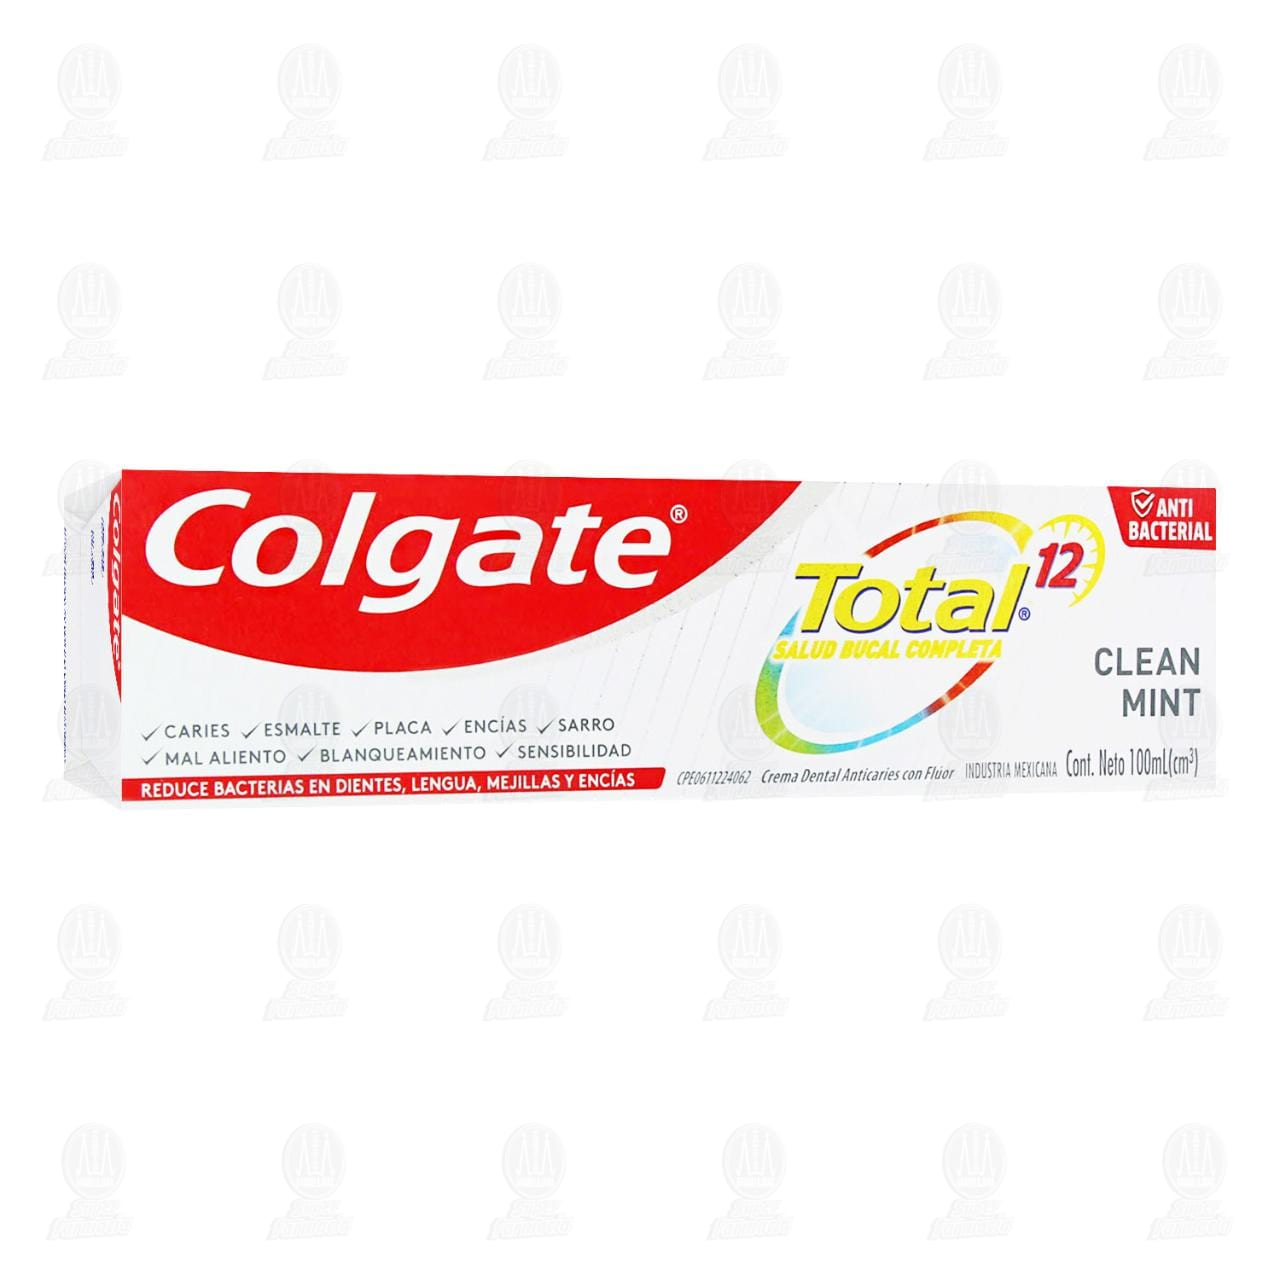 Pasta dental Colgate Total 12 Clean Mint, 100 ml.